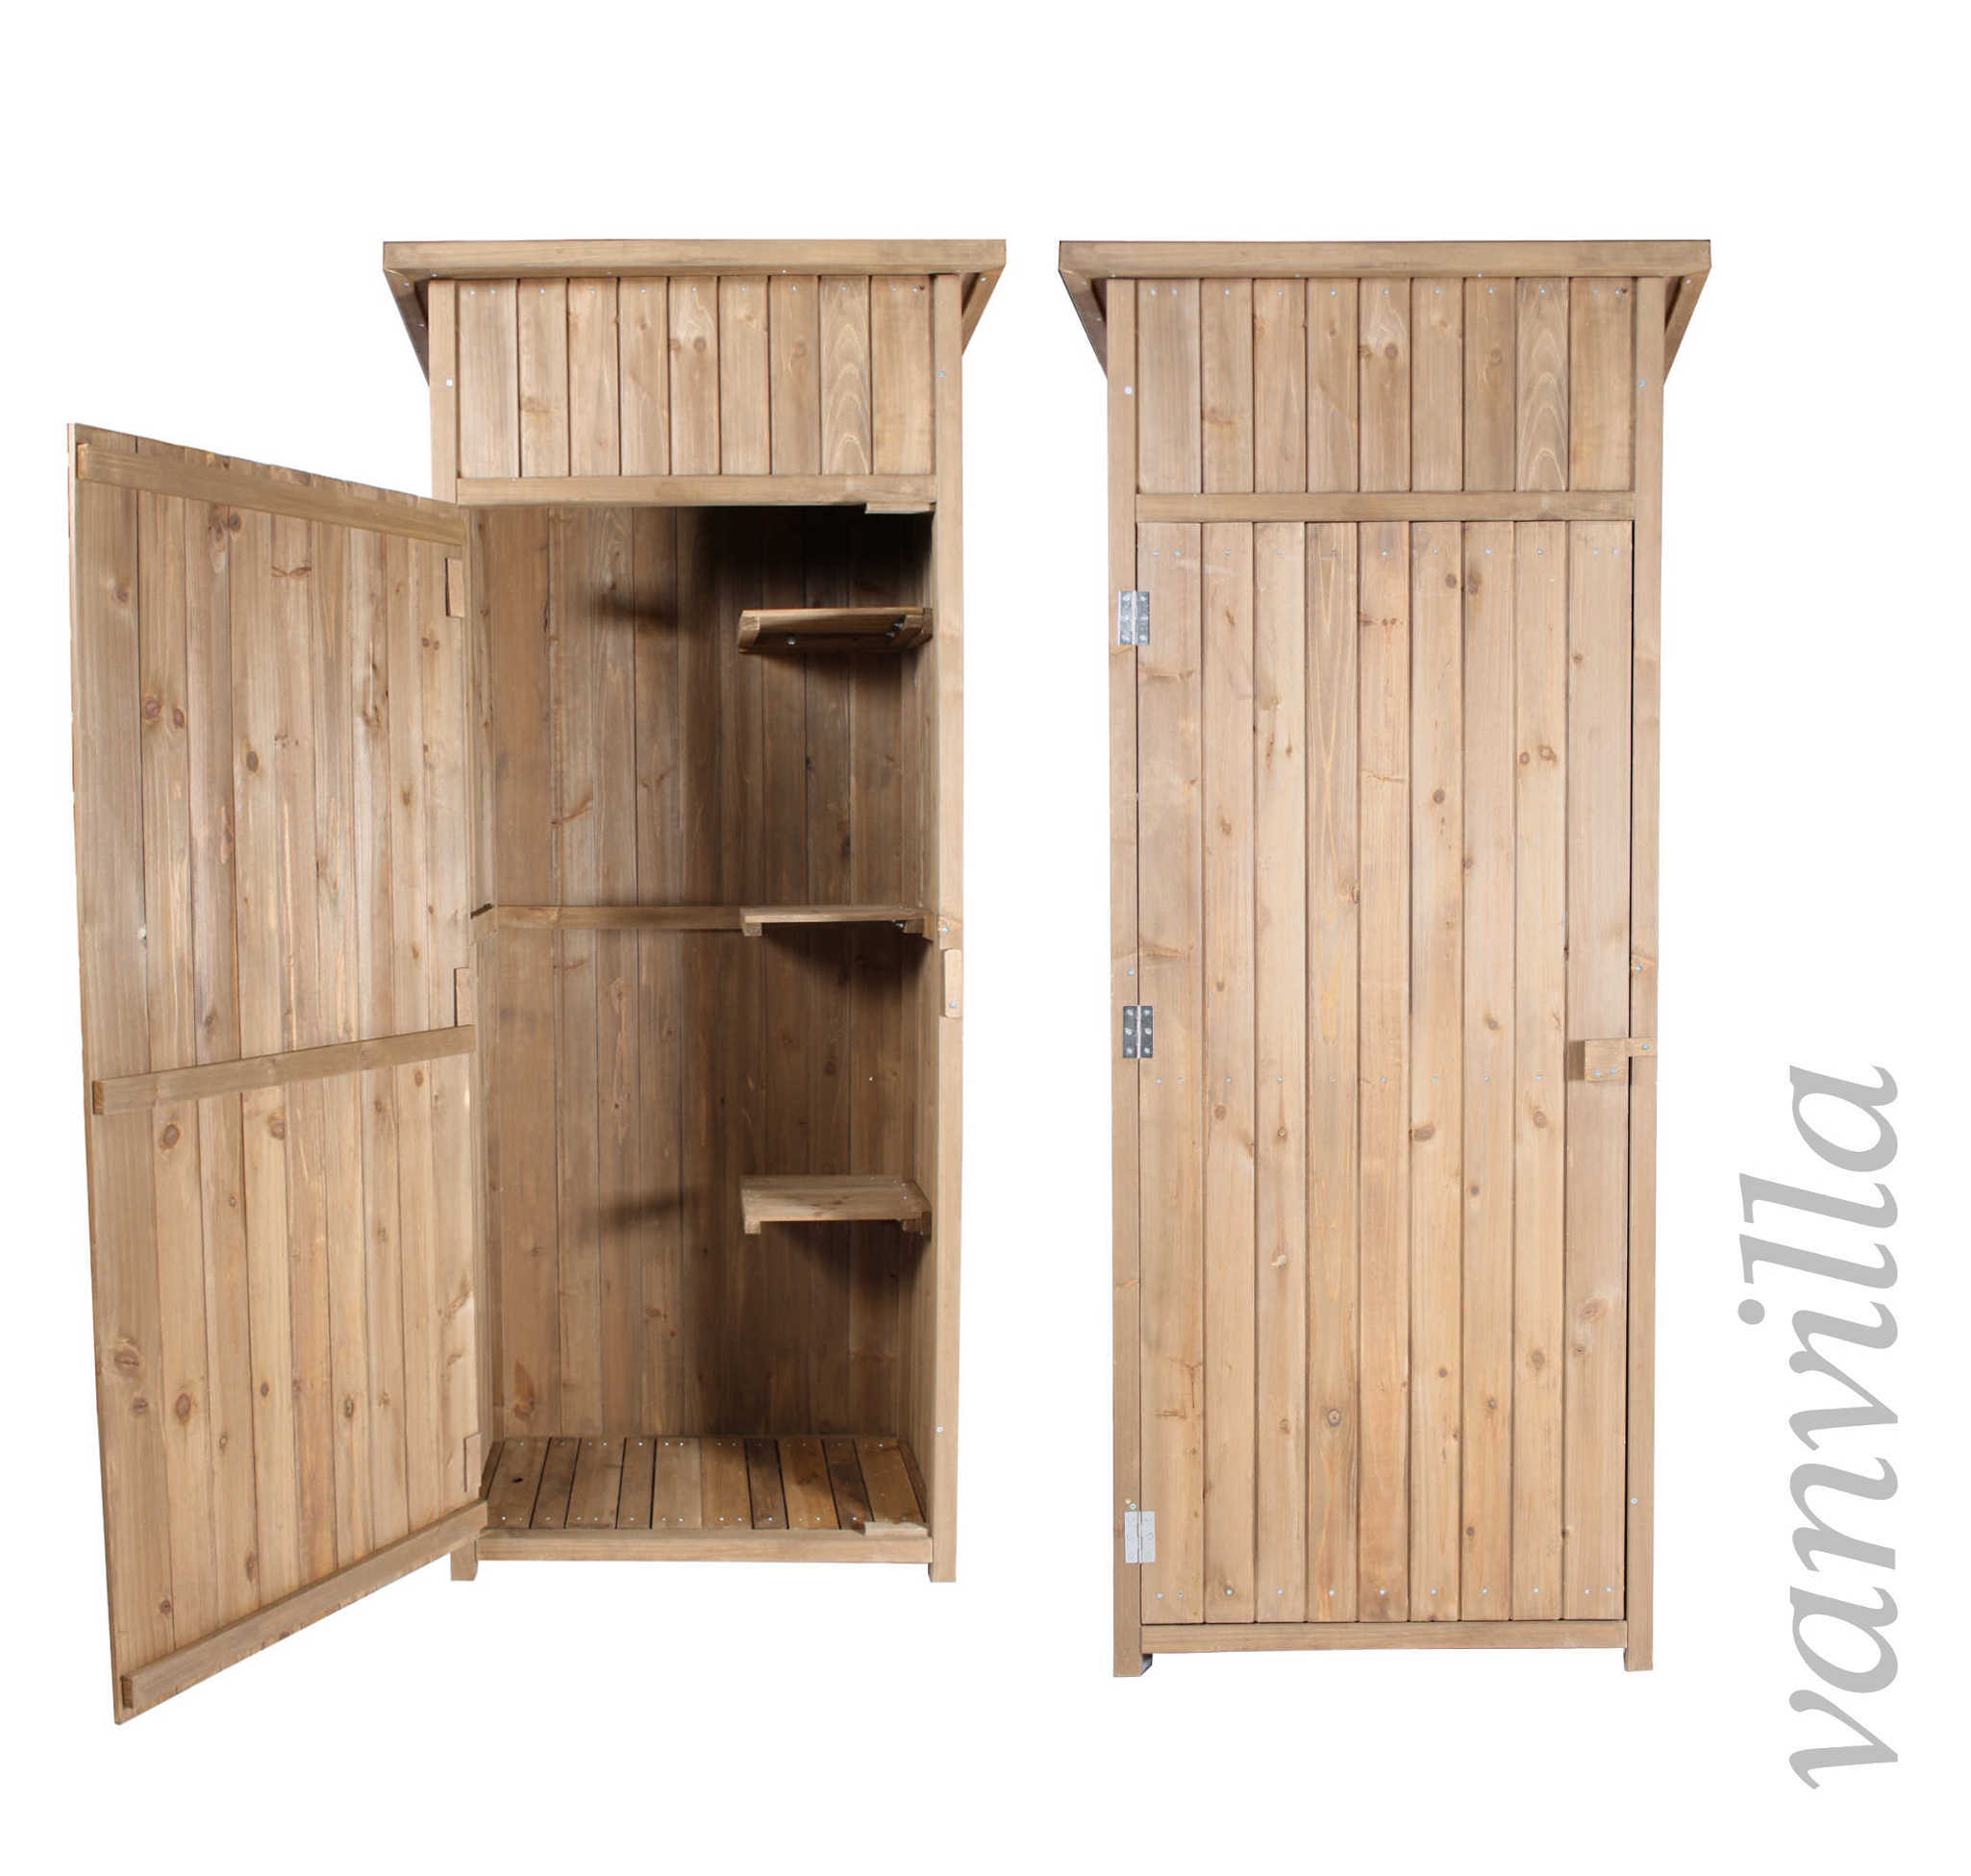 ger teschrank ger teschuppen vanvilla gartenhaus holz schuppen ger tehaus ebay. Black Bedroom Furniture Sets. Home Design Ideas